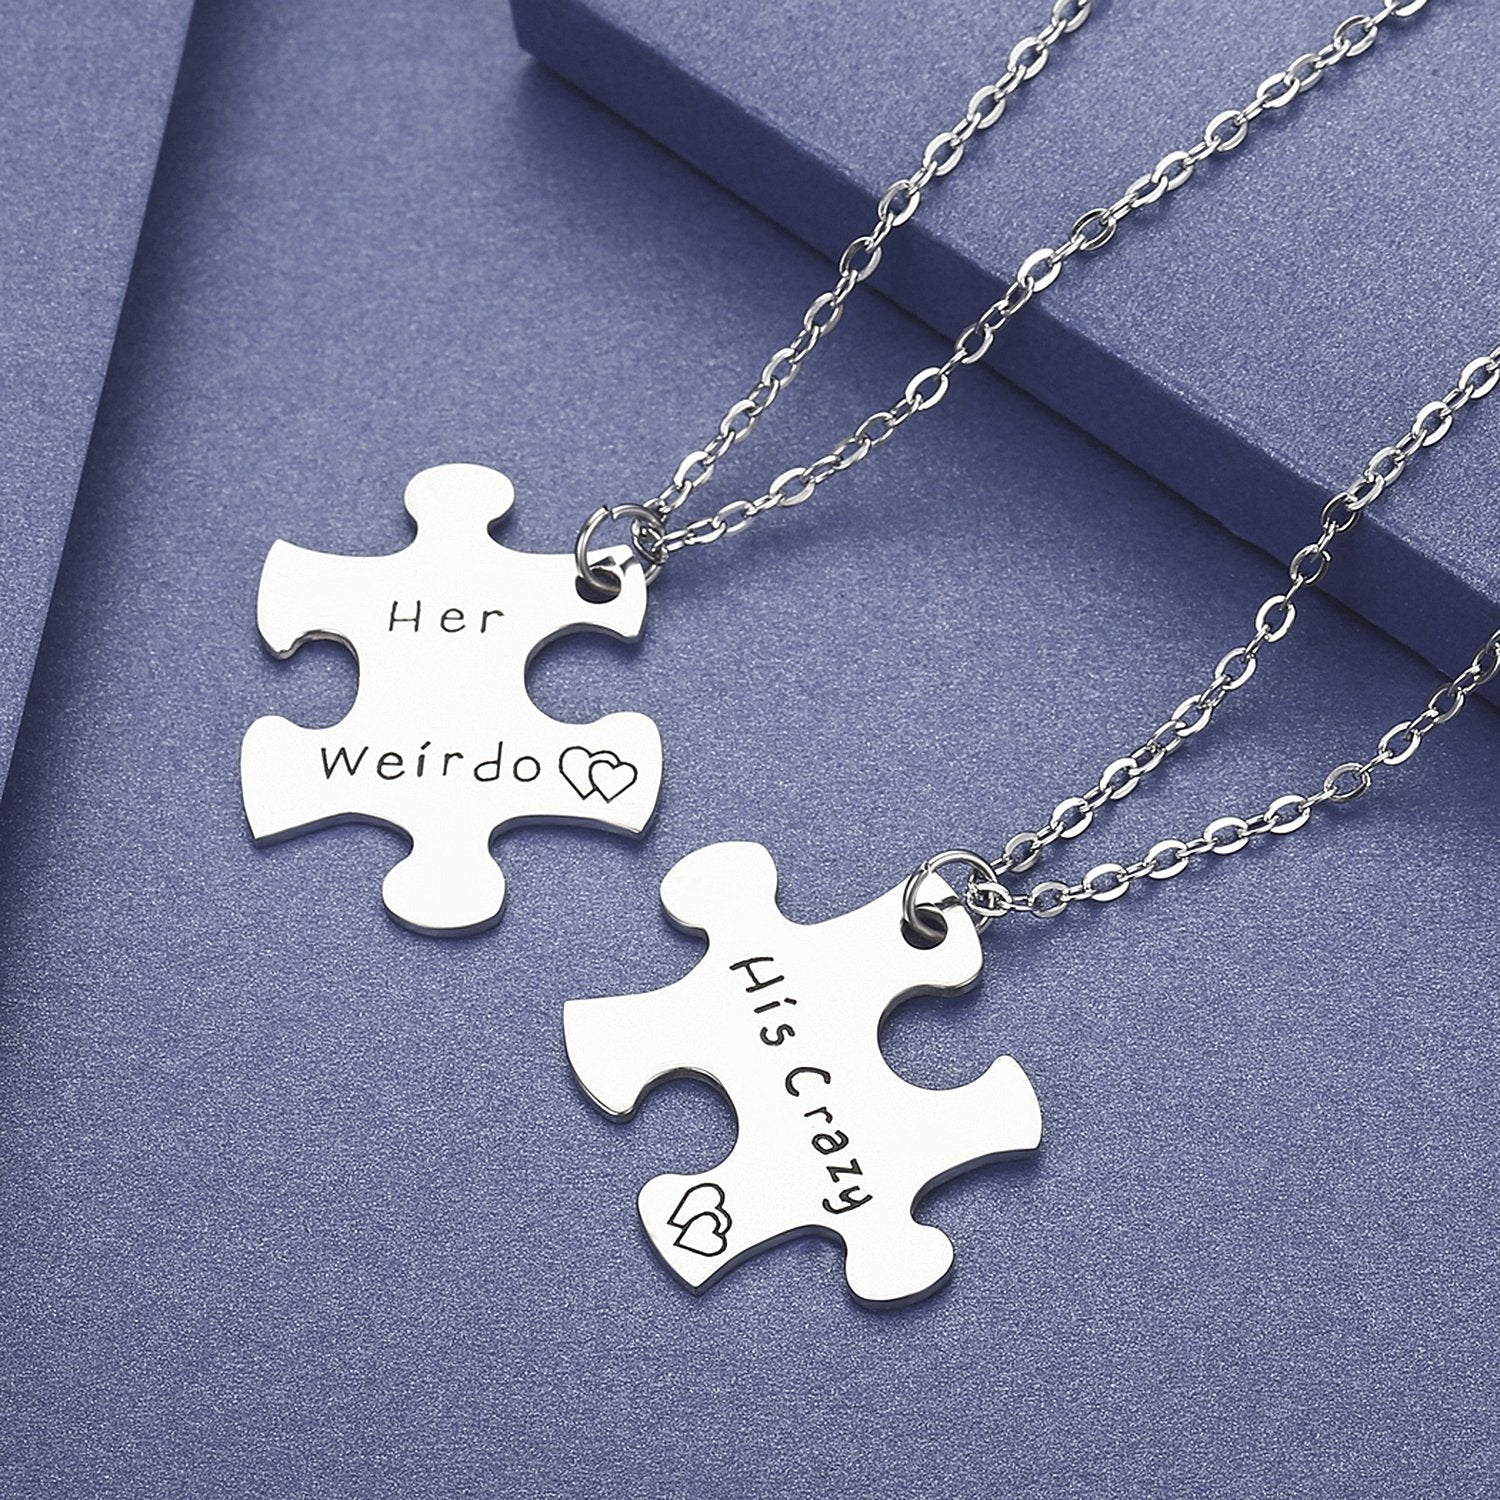 8622a12341 ... Stainless Steel His Crazy Her Weirdo Couples Necklace Set,Personalized  Couples Jewelry,Perfect Gift ...